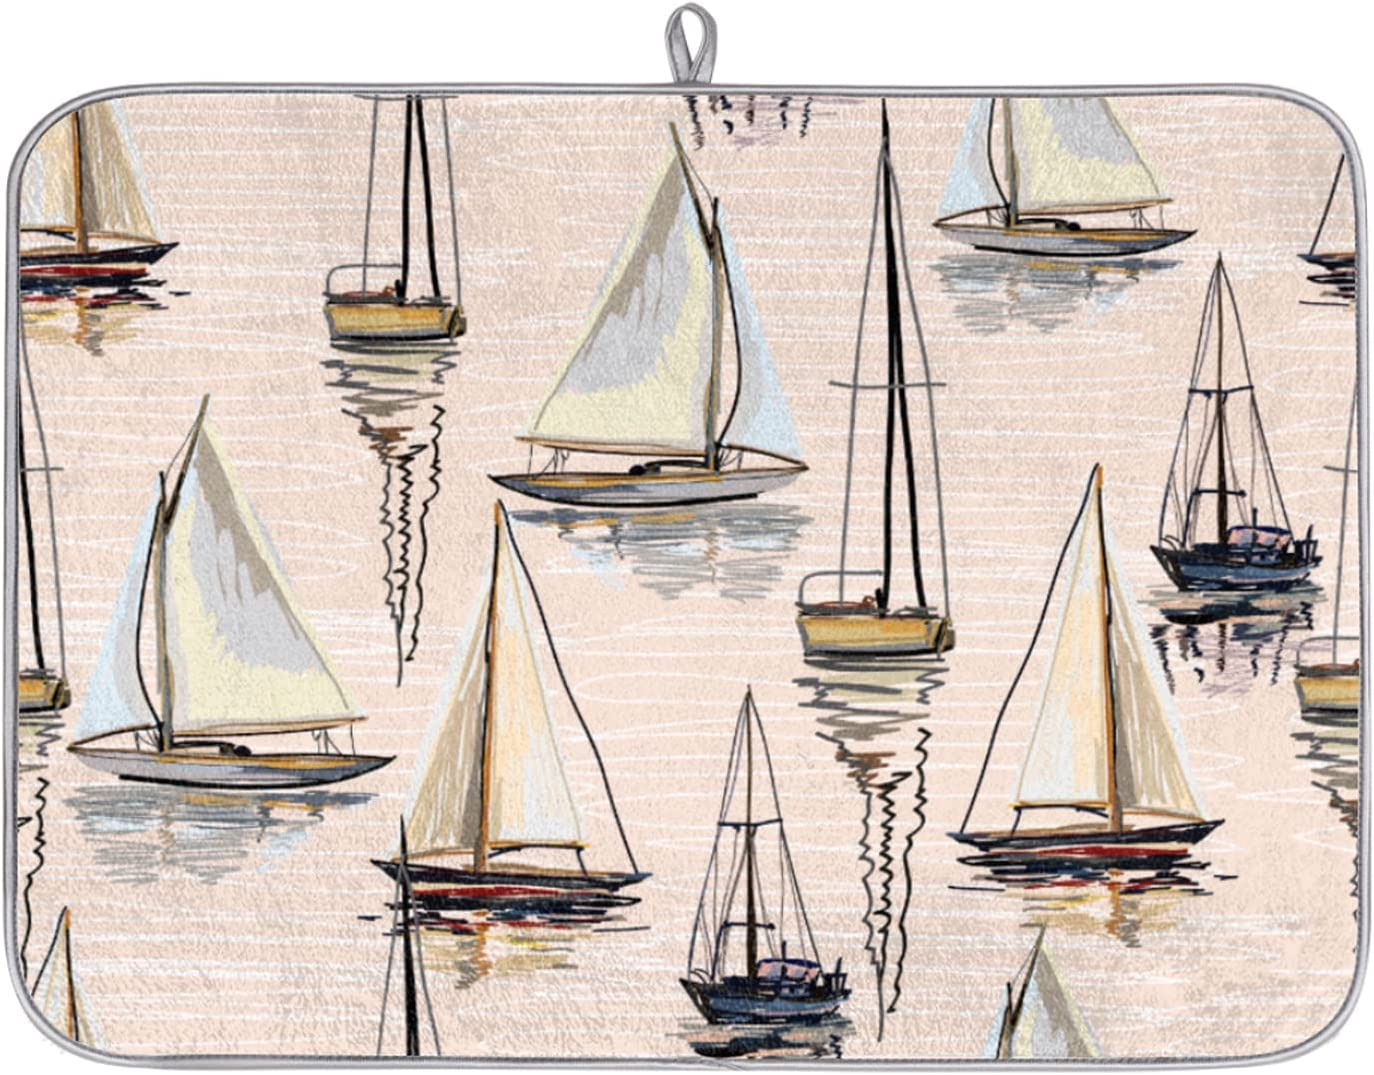 Dish Drying Mat Sailboat Pattern Kitchen Counter Absorbent quality assurance Columbus Mall M for